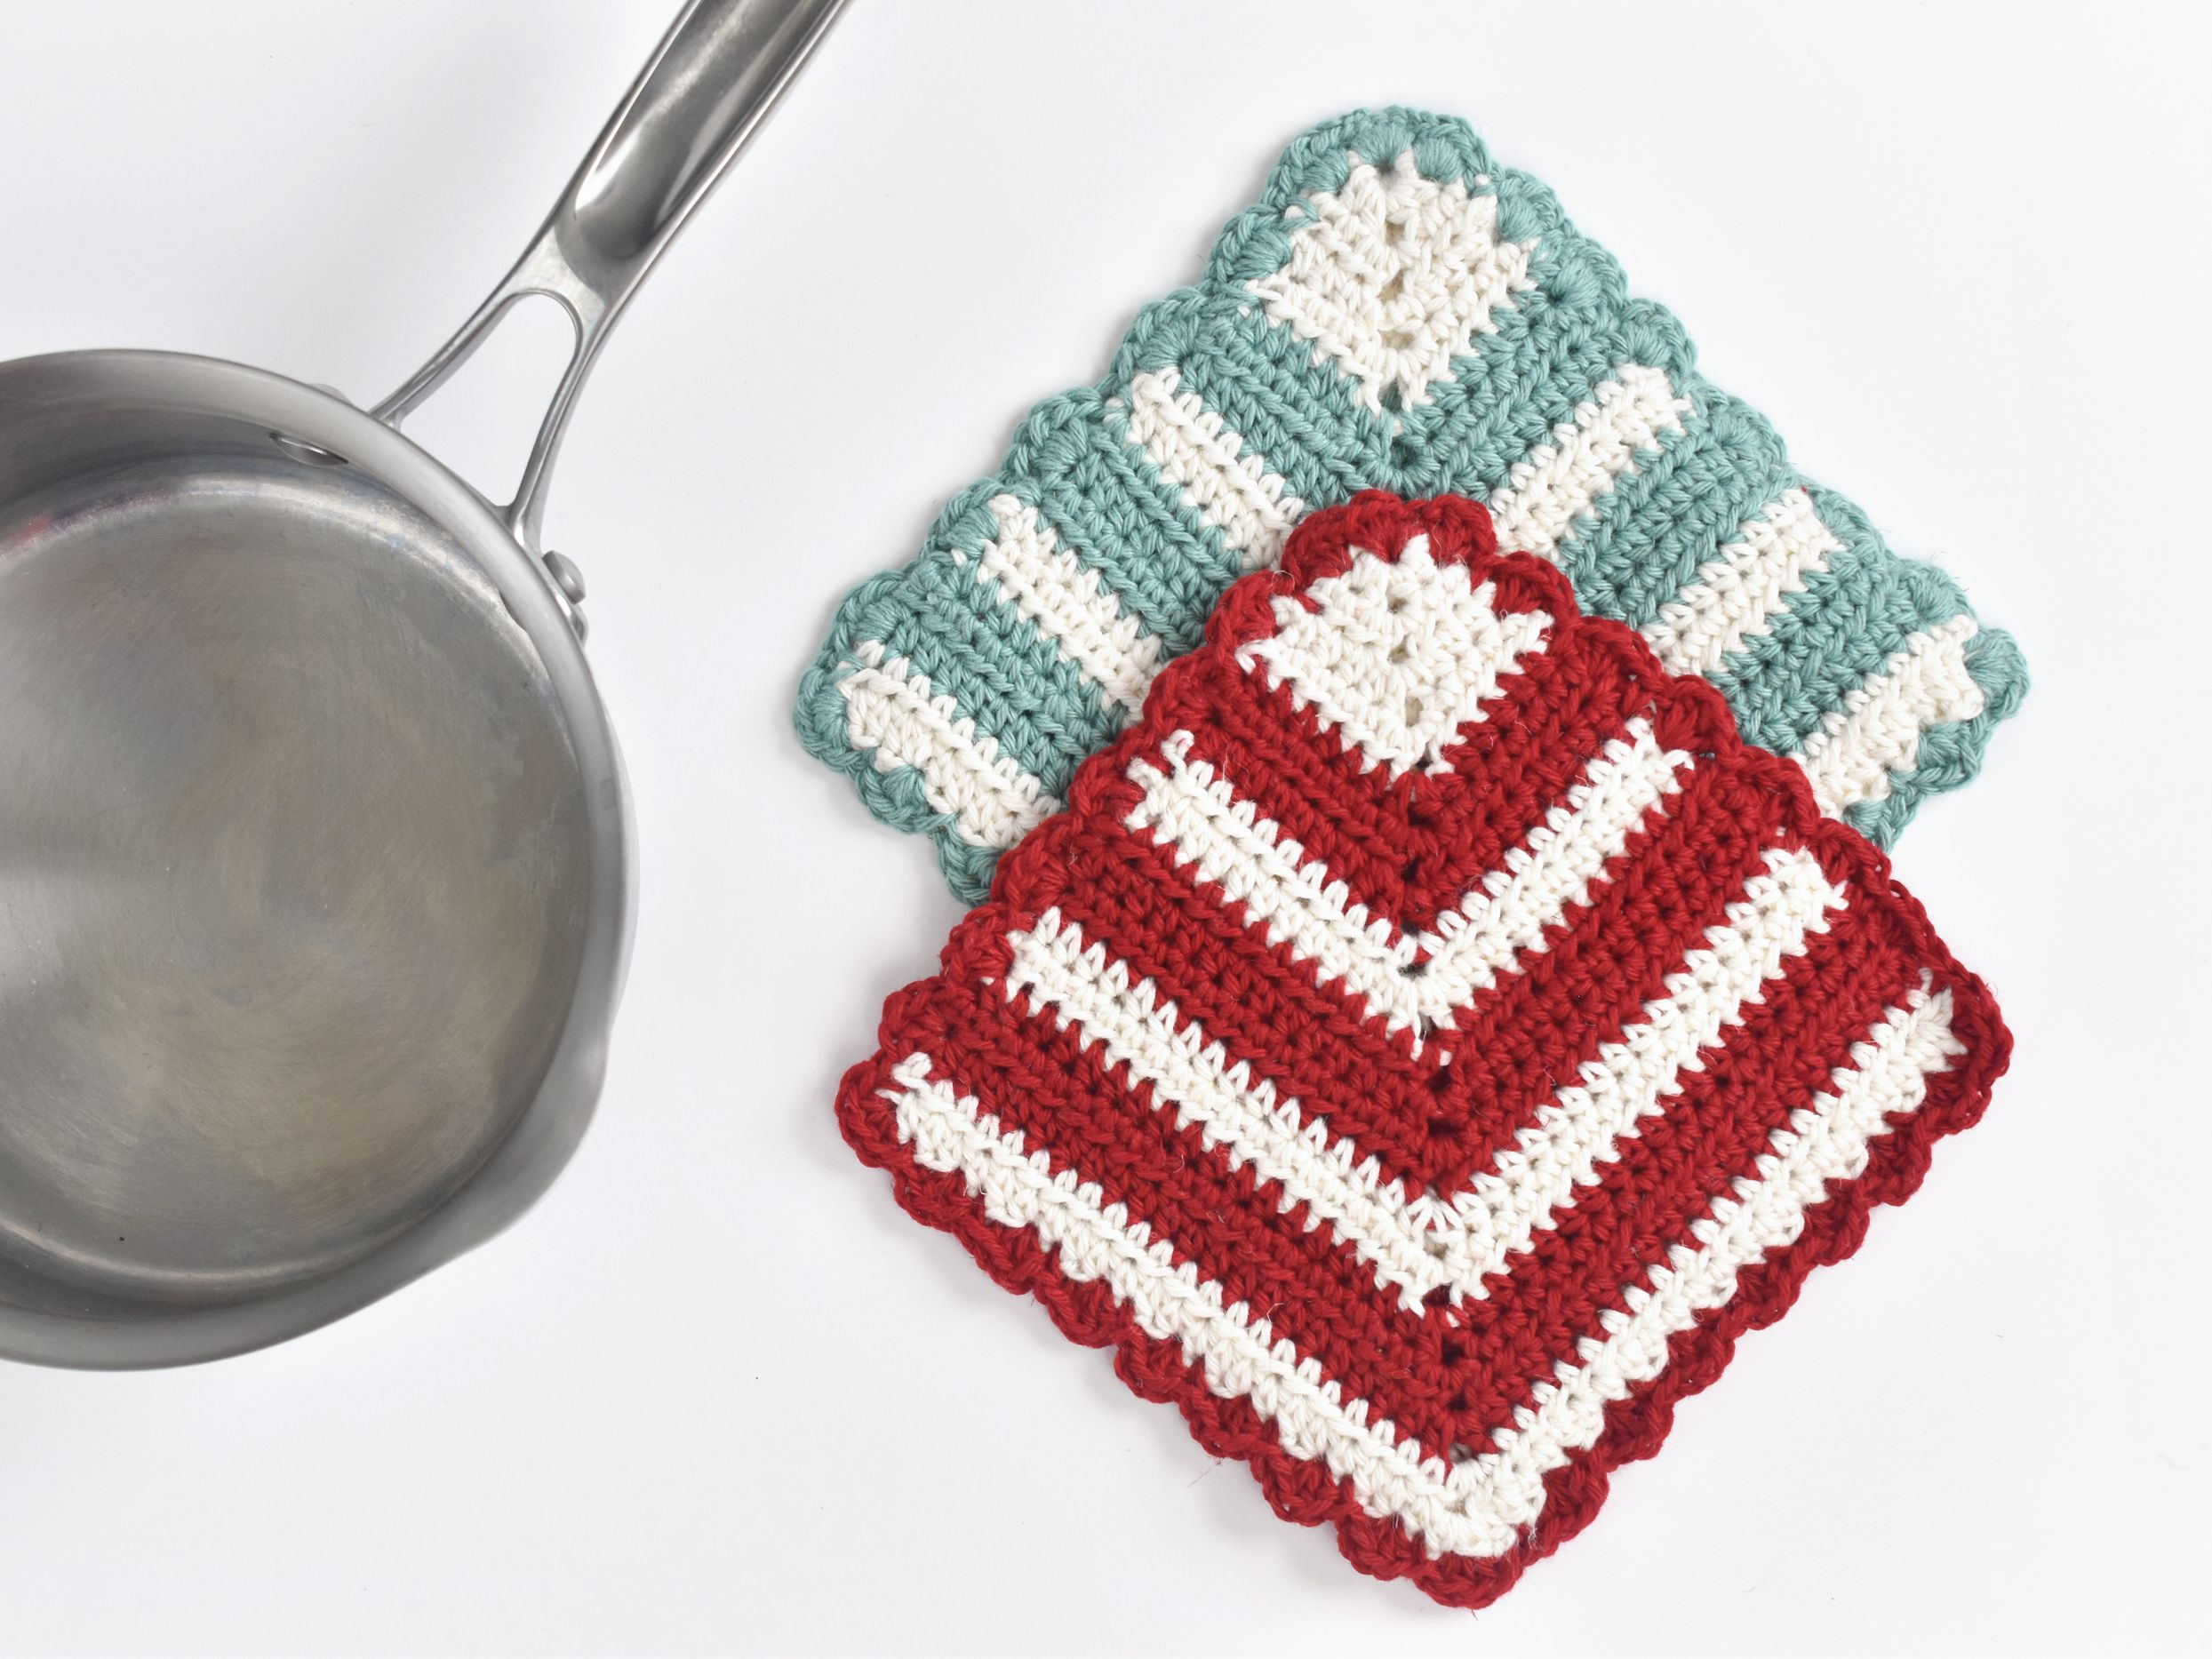 How To Crochet A Potholder